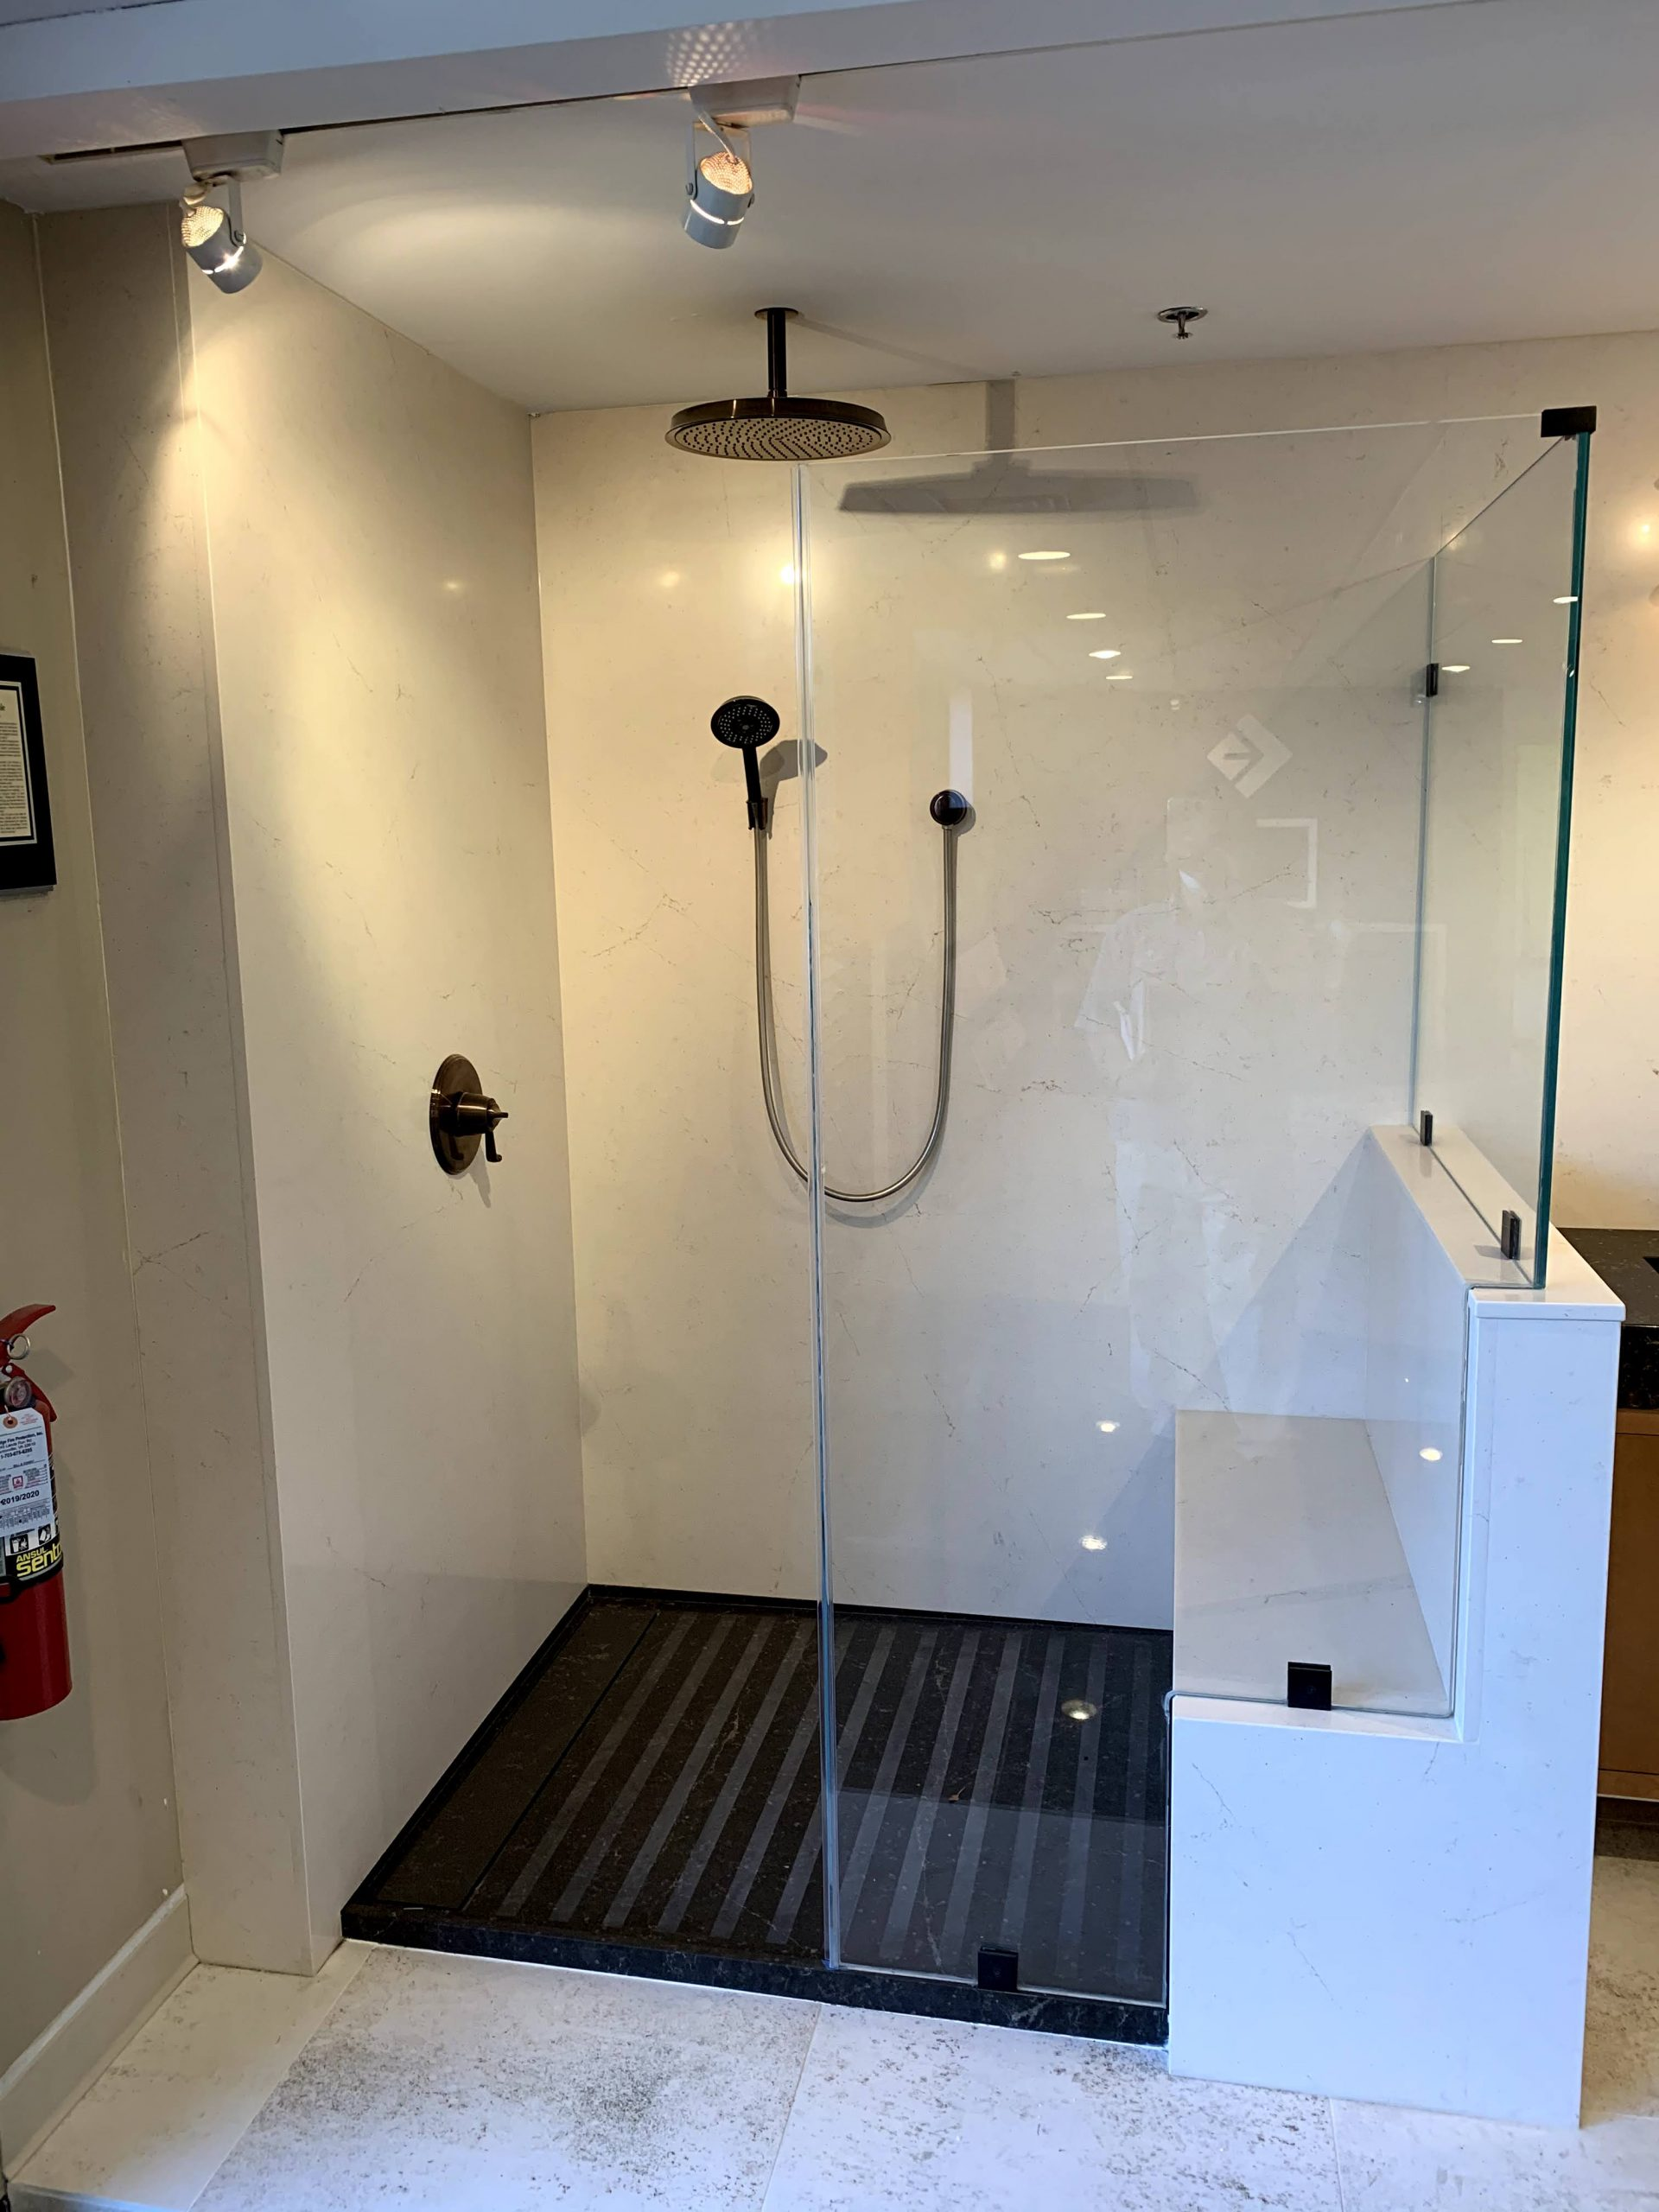 grout-less shower walls and floor